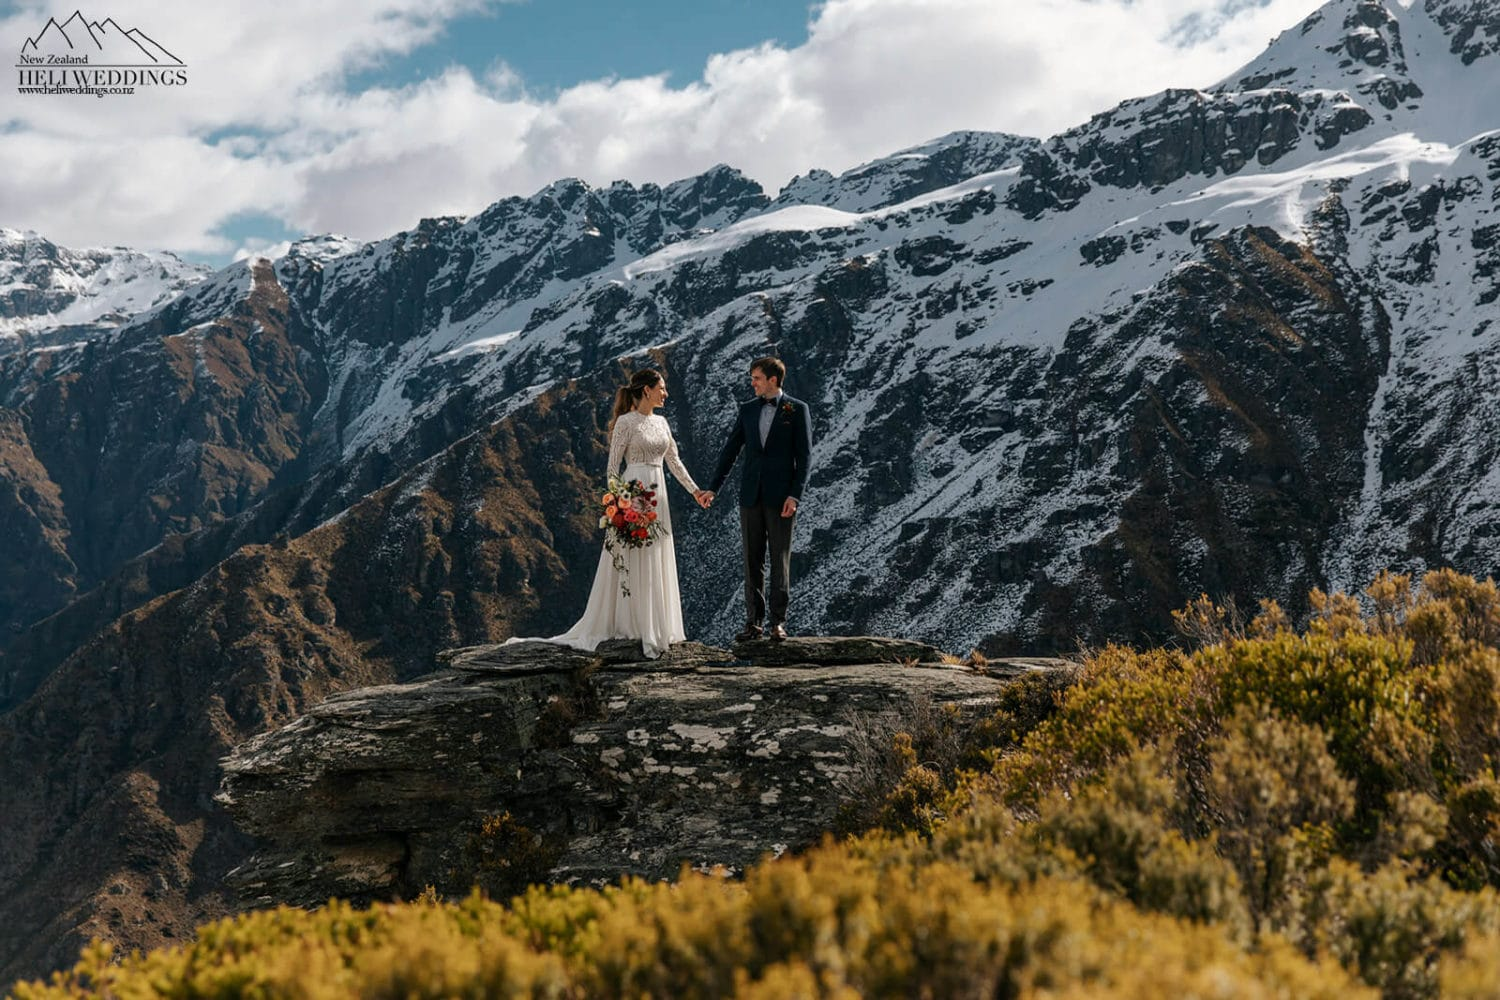 Queenstown Wedding packages with helicopters